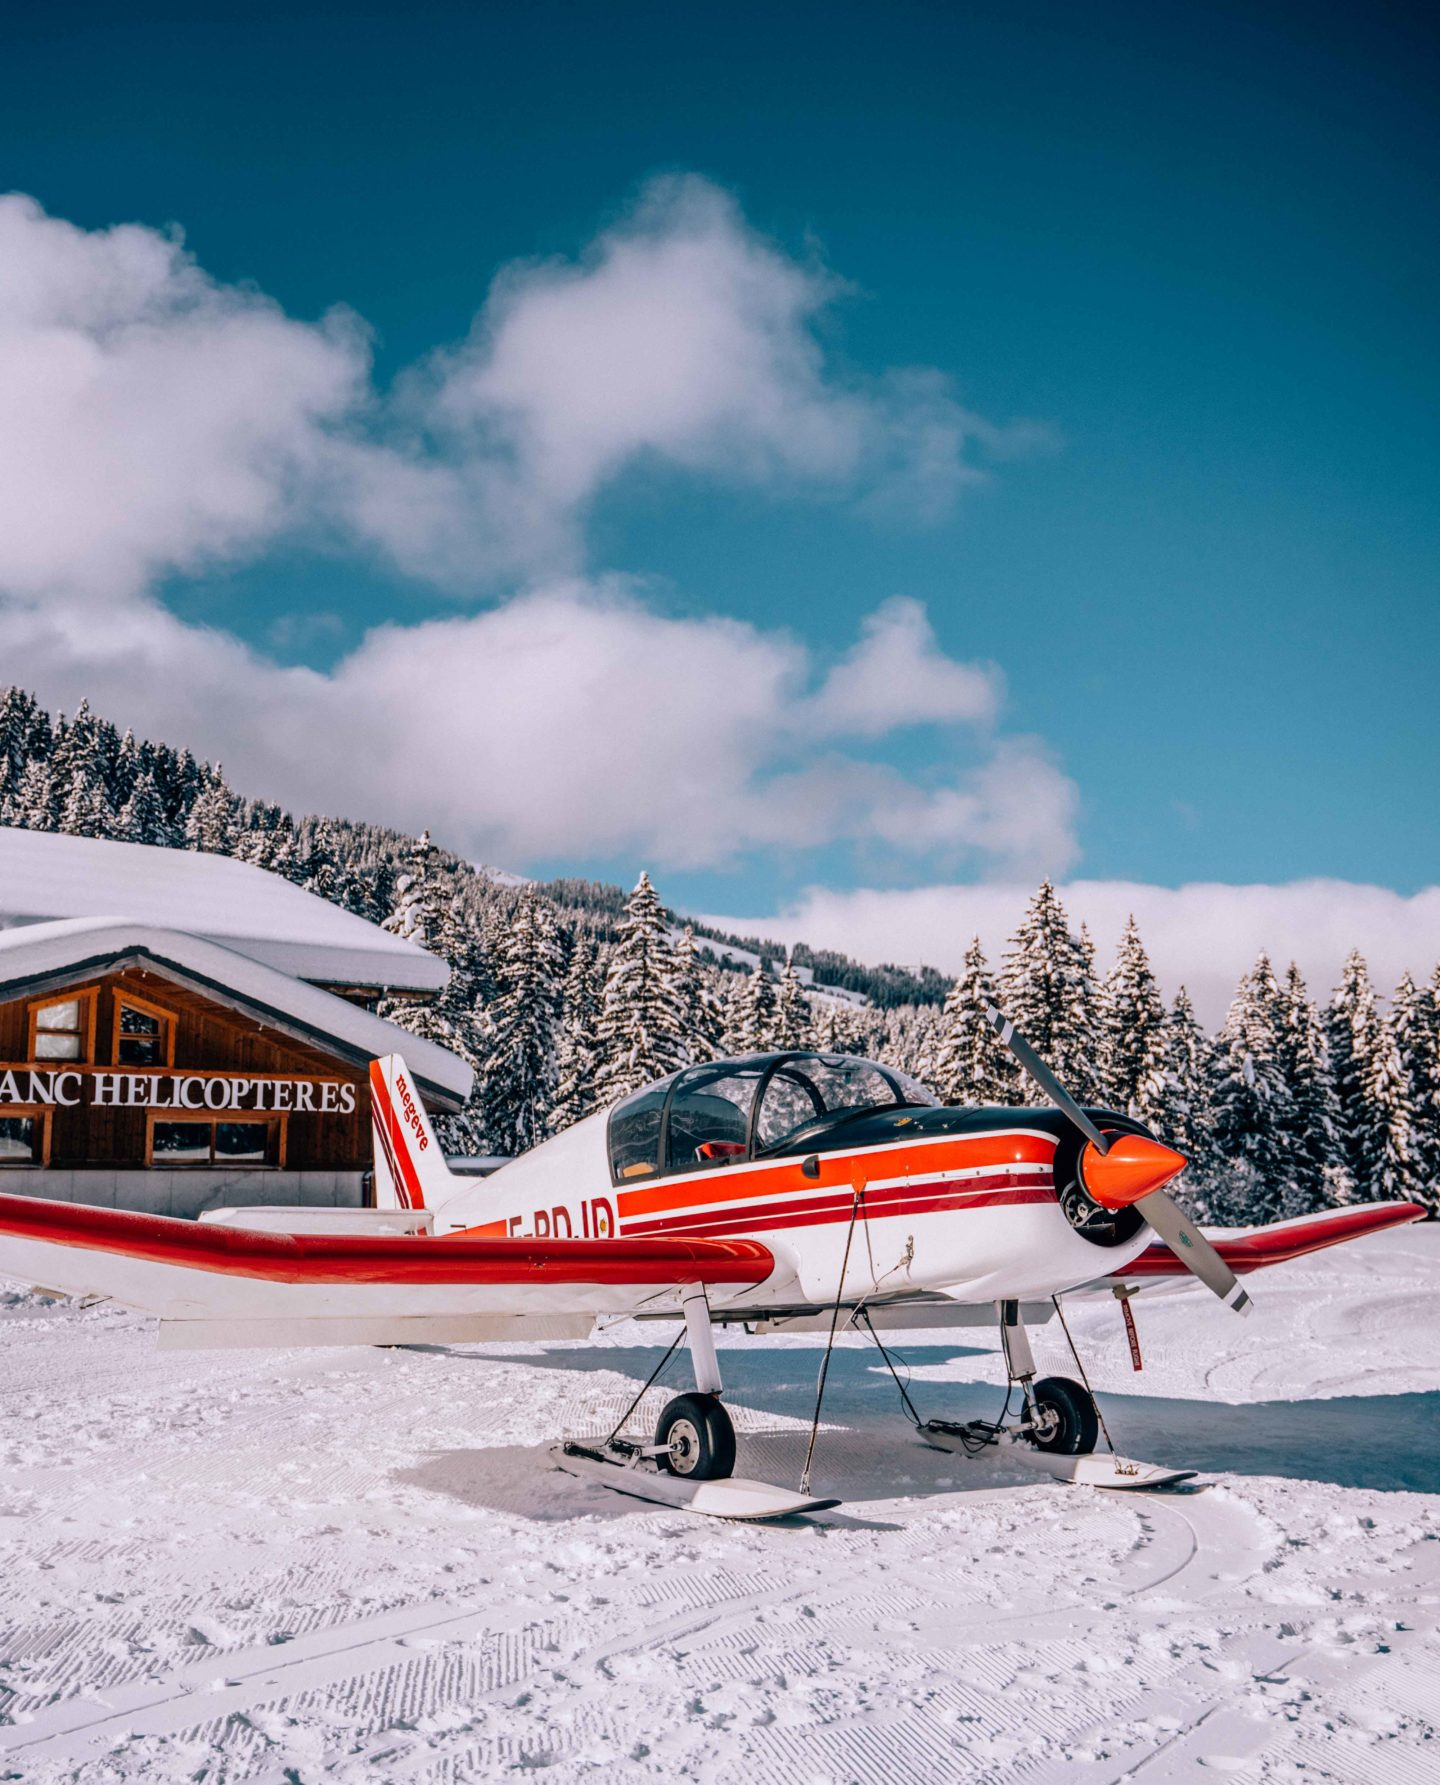 Book a flight above the Mont Blanc